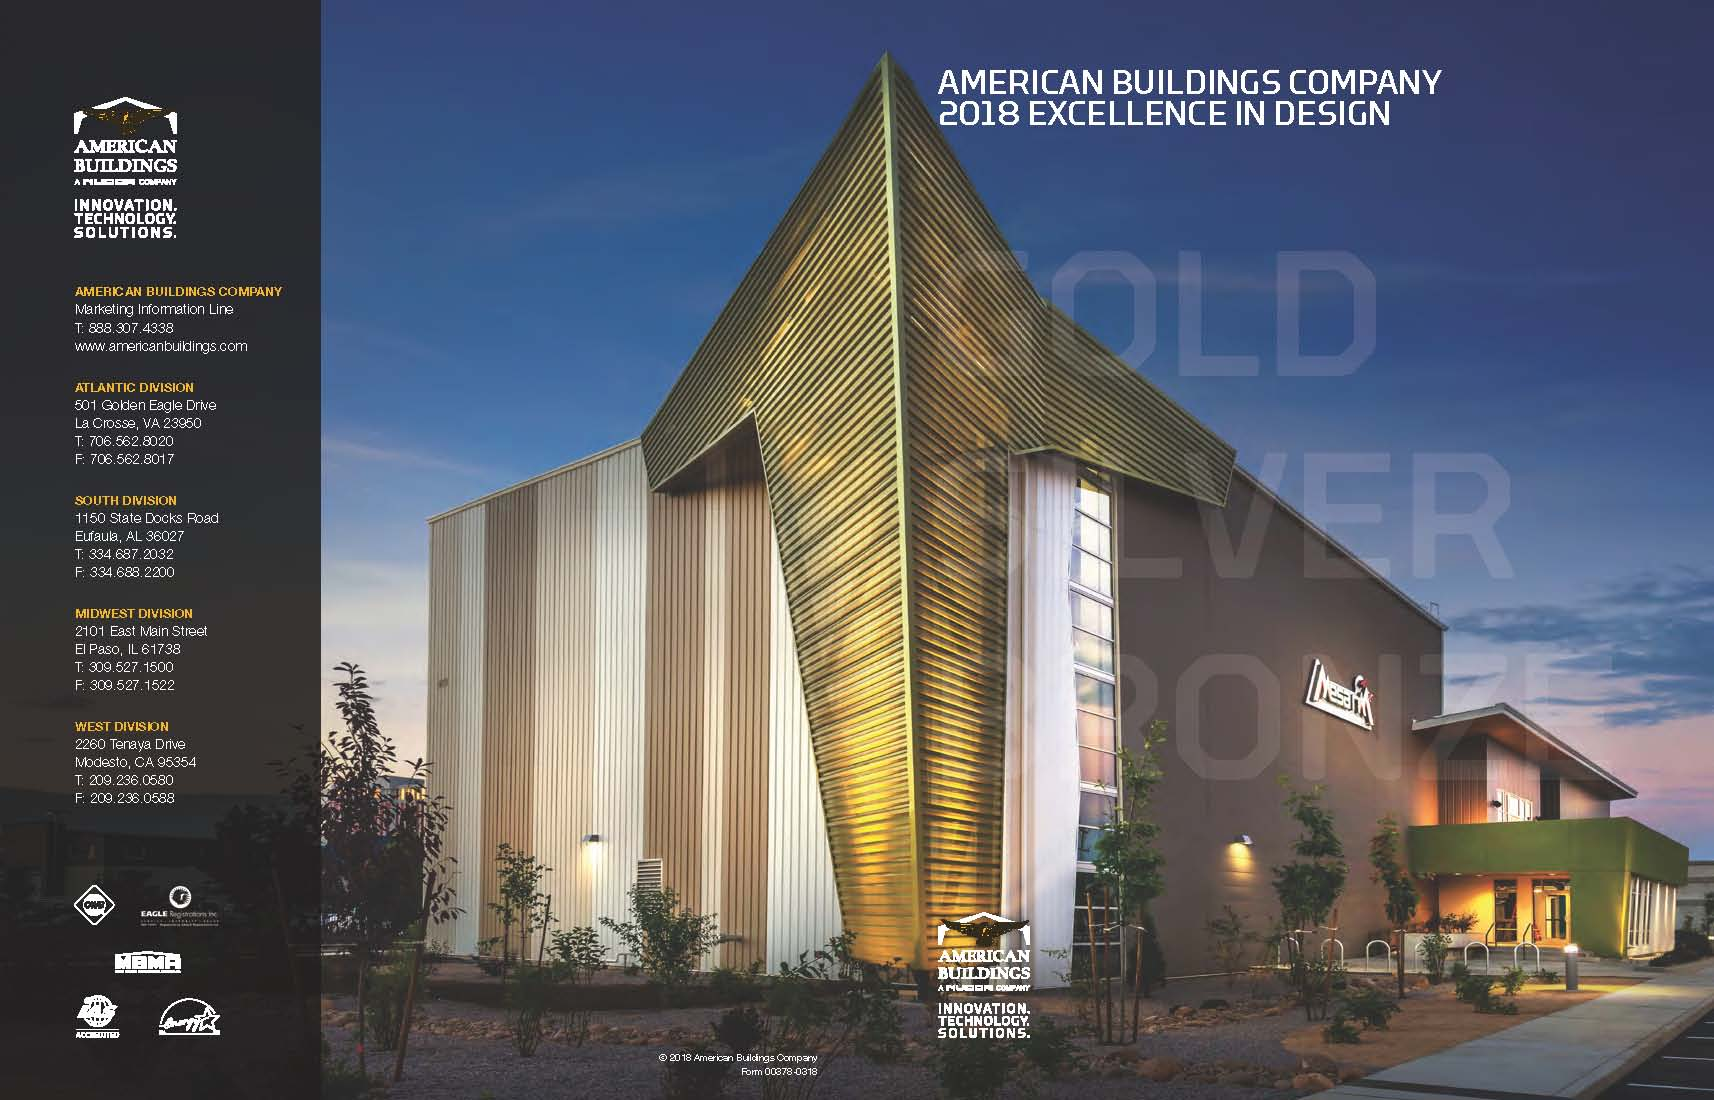 To Learn More About The American Buildings Company 2018 Exellence In Design Compeion Click Here